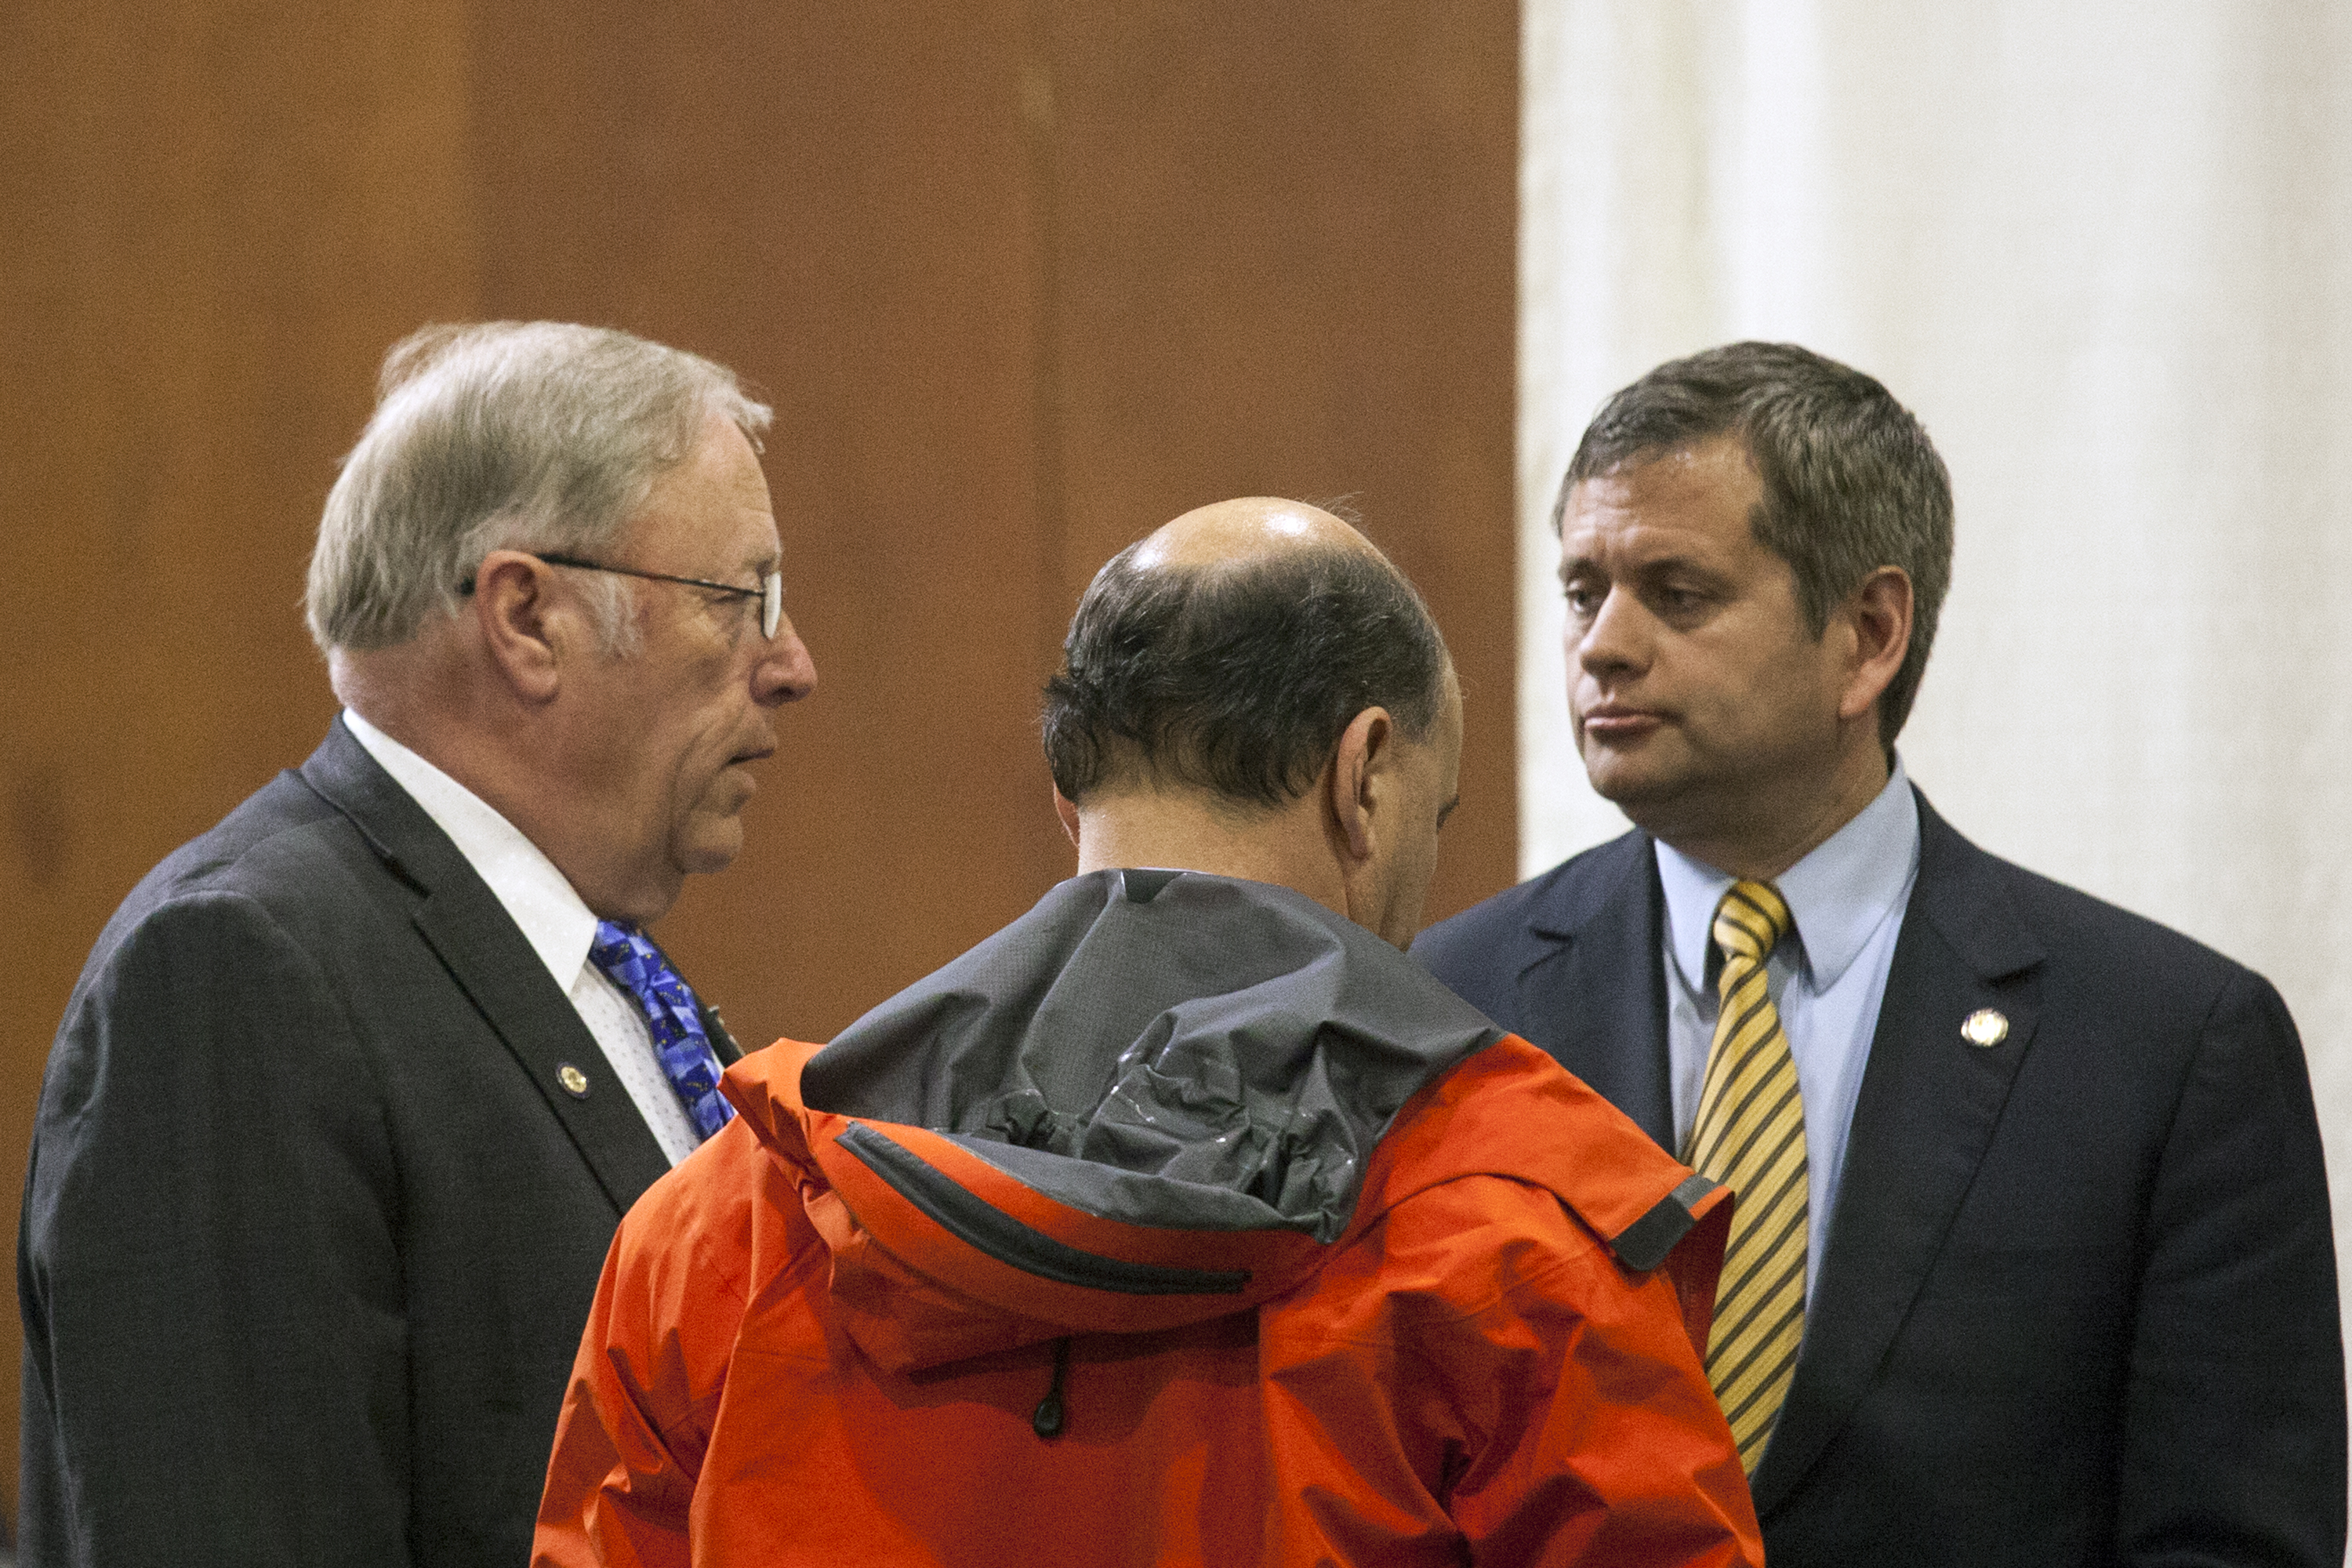 House Speaker Mike Chenault, R-Nikiski, Rep. Les Gara, D-Anchorage and House Minority Leader Chris Tuck, D-Anchorage, confer after the first floor session of the legislature's special session on Monday May 23, 2016 in Juneau, Alaska. (Photo by Rashah McChesney, KTOO - Juneau)